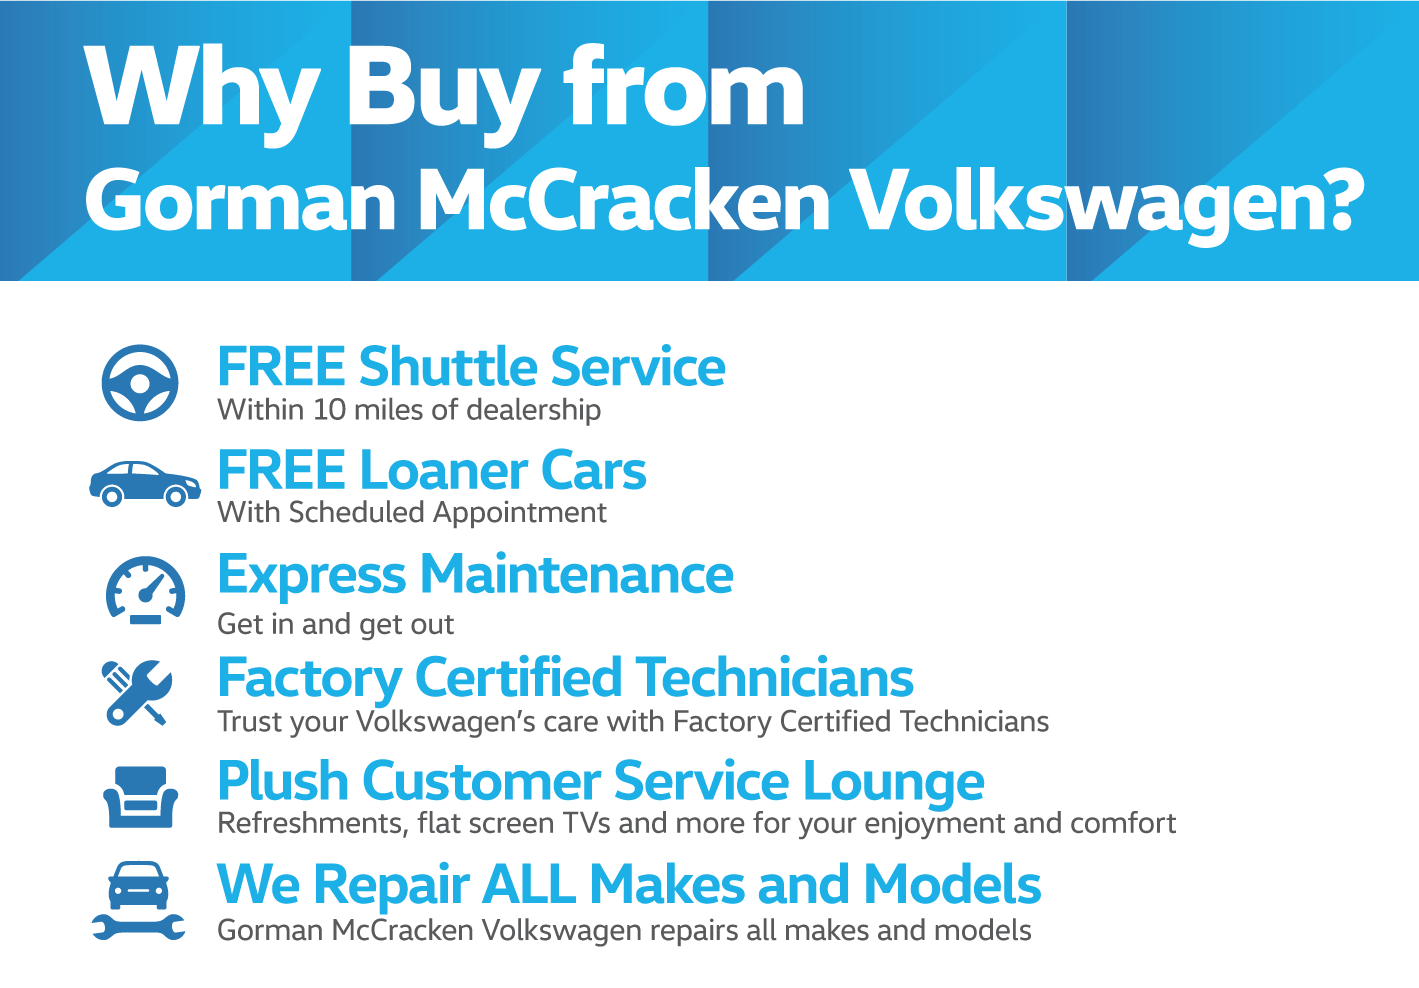 Why Buy from Gorman McCracken Volkswagen